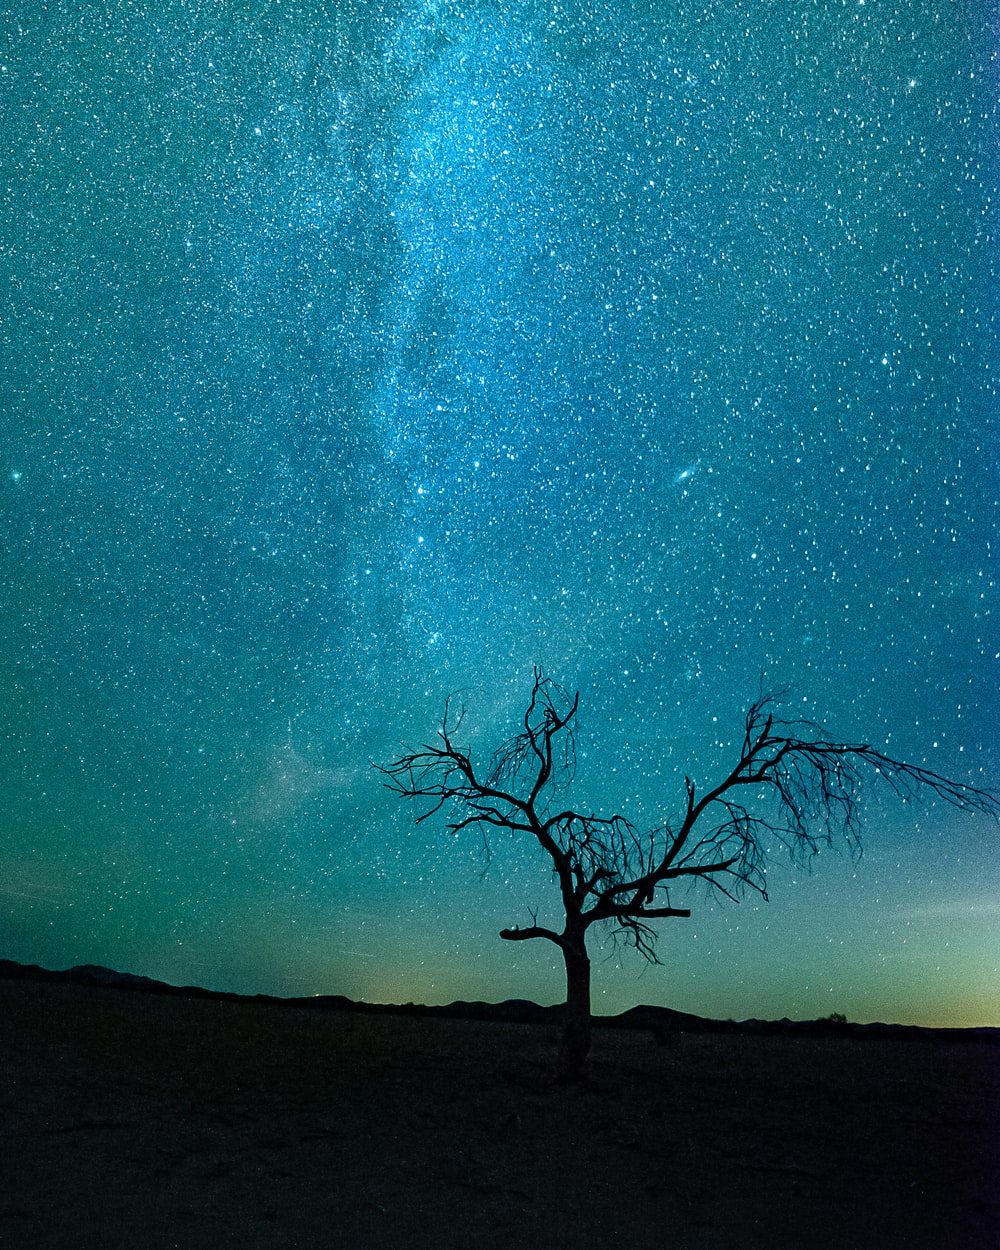 bare tree under starry night